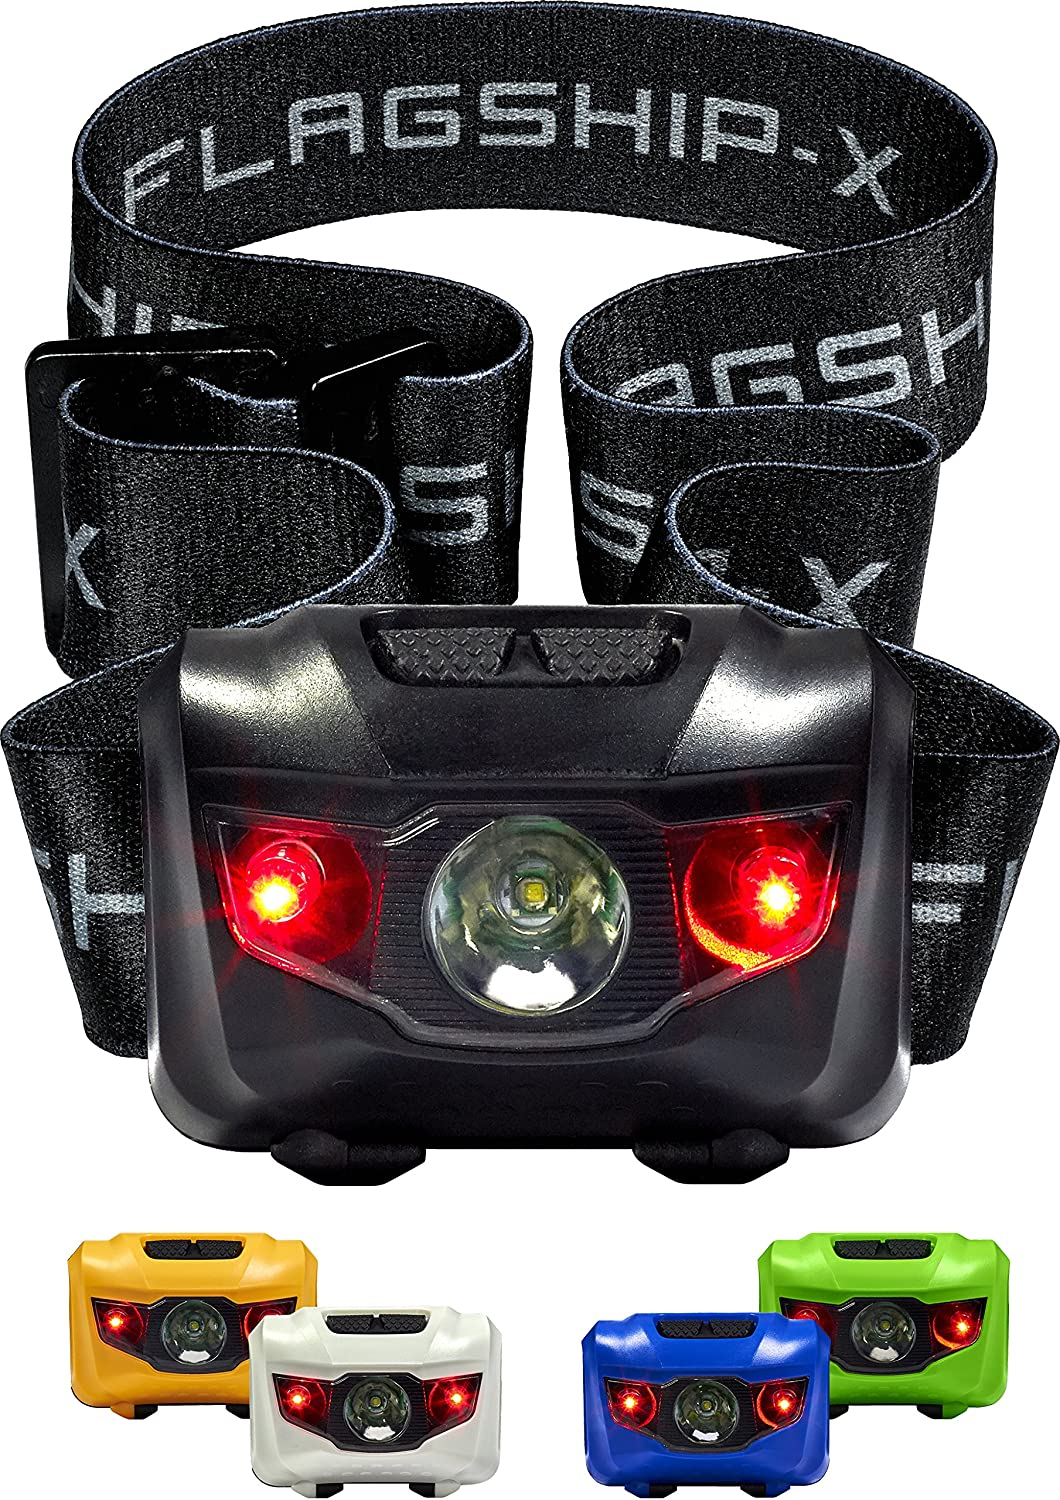 Best Headlamp 2020.Top 10 Best Waterproof Headlamps Reviews 2019 2020 On